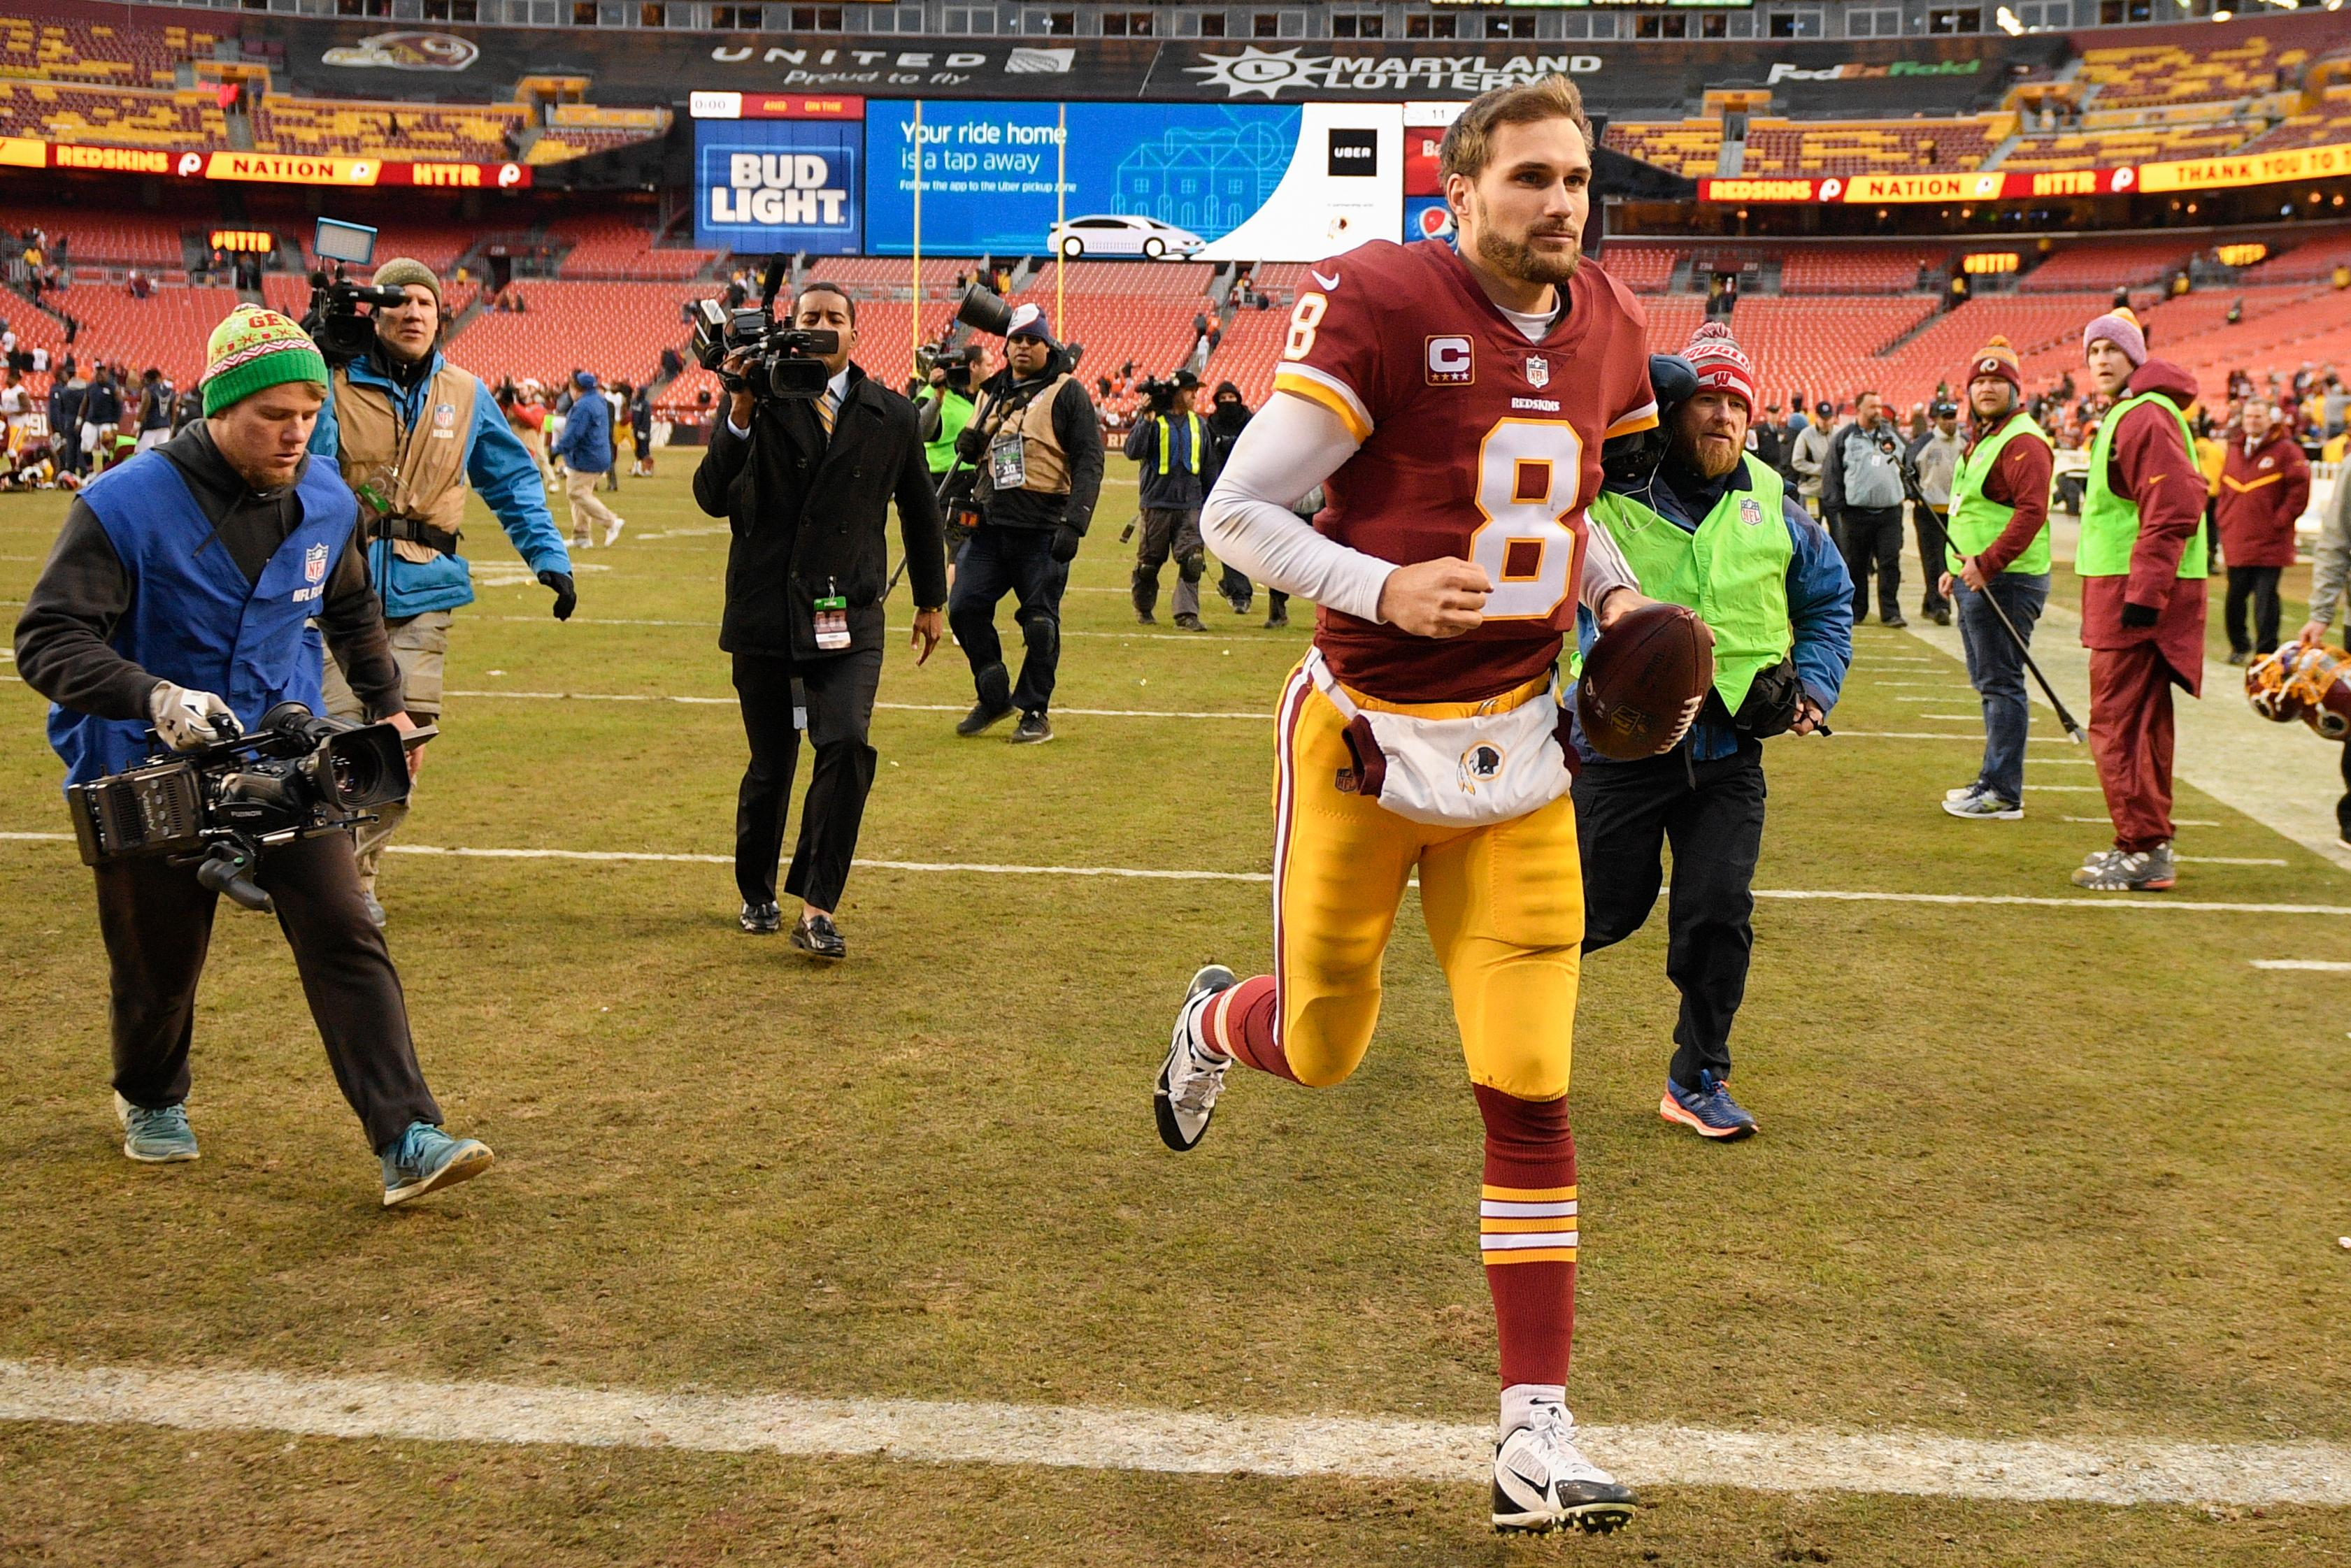 Washington Redskins quarterback Kirk Cousins (8) runs off the field after an NFL football game against the Denver Broncos in Landover, Md., Sunday, Dec 24, 2017. The Redskins defeated the Broncos 27-11. (AP Photo/Nick Wass)